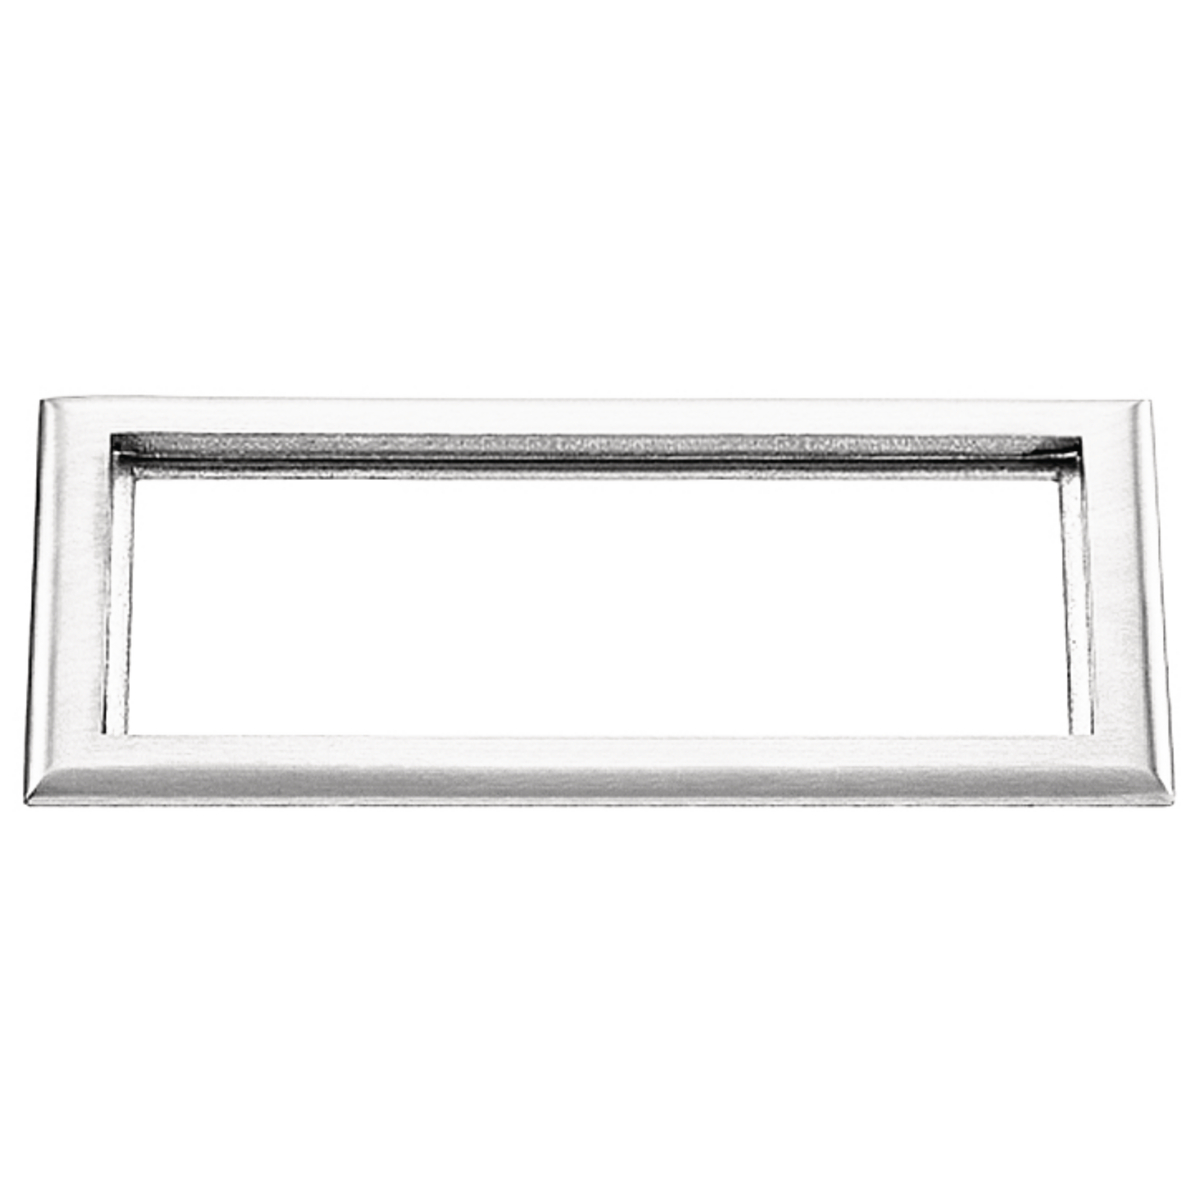 Hubbell S3085 3-Gang 6 x 11.34 Inch Clear Polycarbonate Rectangular Floor Box Carpet Flange